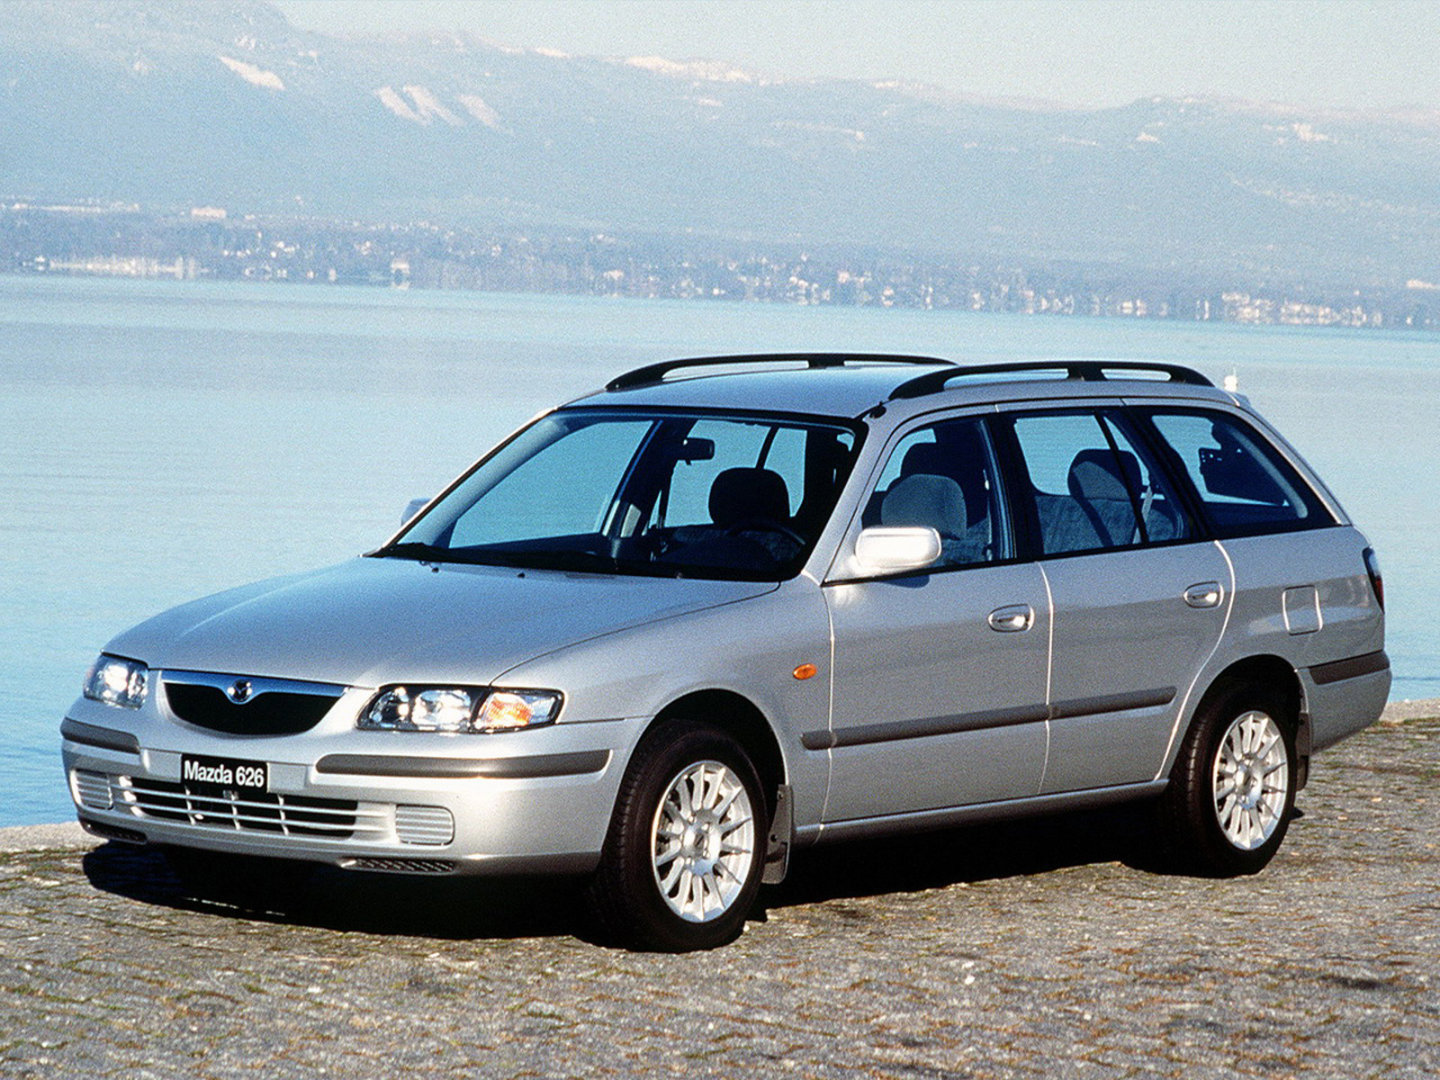 Mazda_626_wagon_1999_original